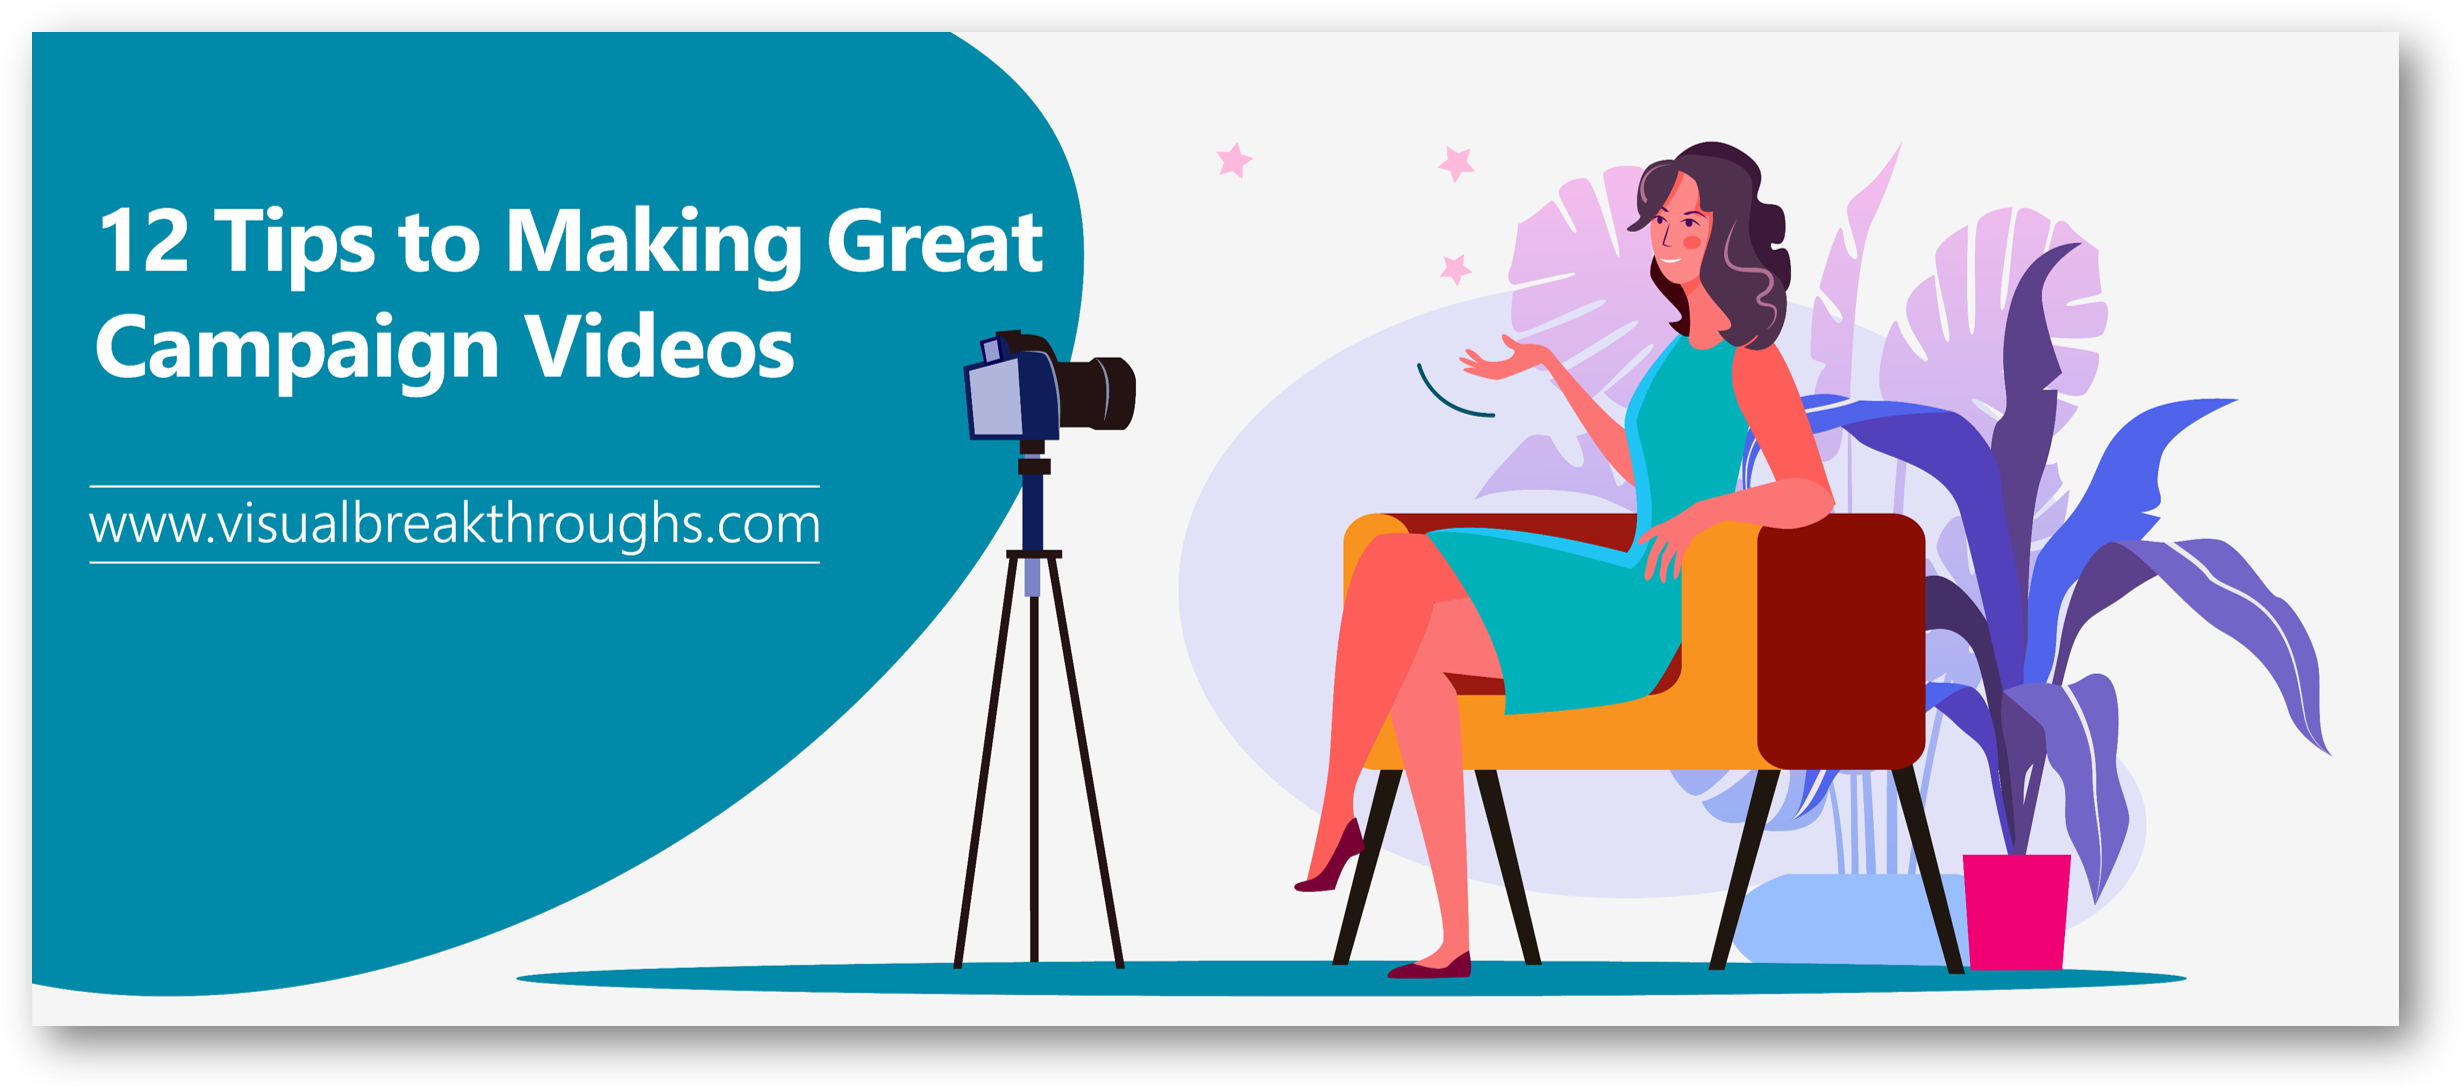 12 Tips to Making Great Campaign Videos - www.visualbreakthroughs.com